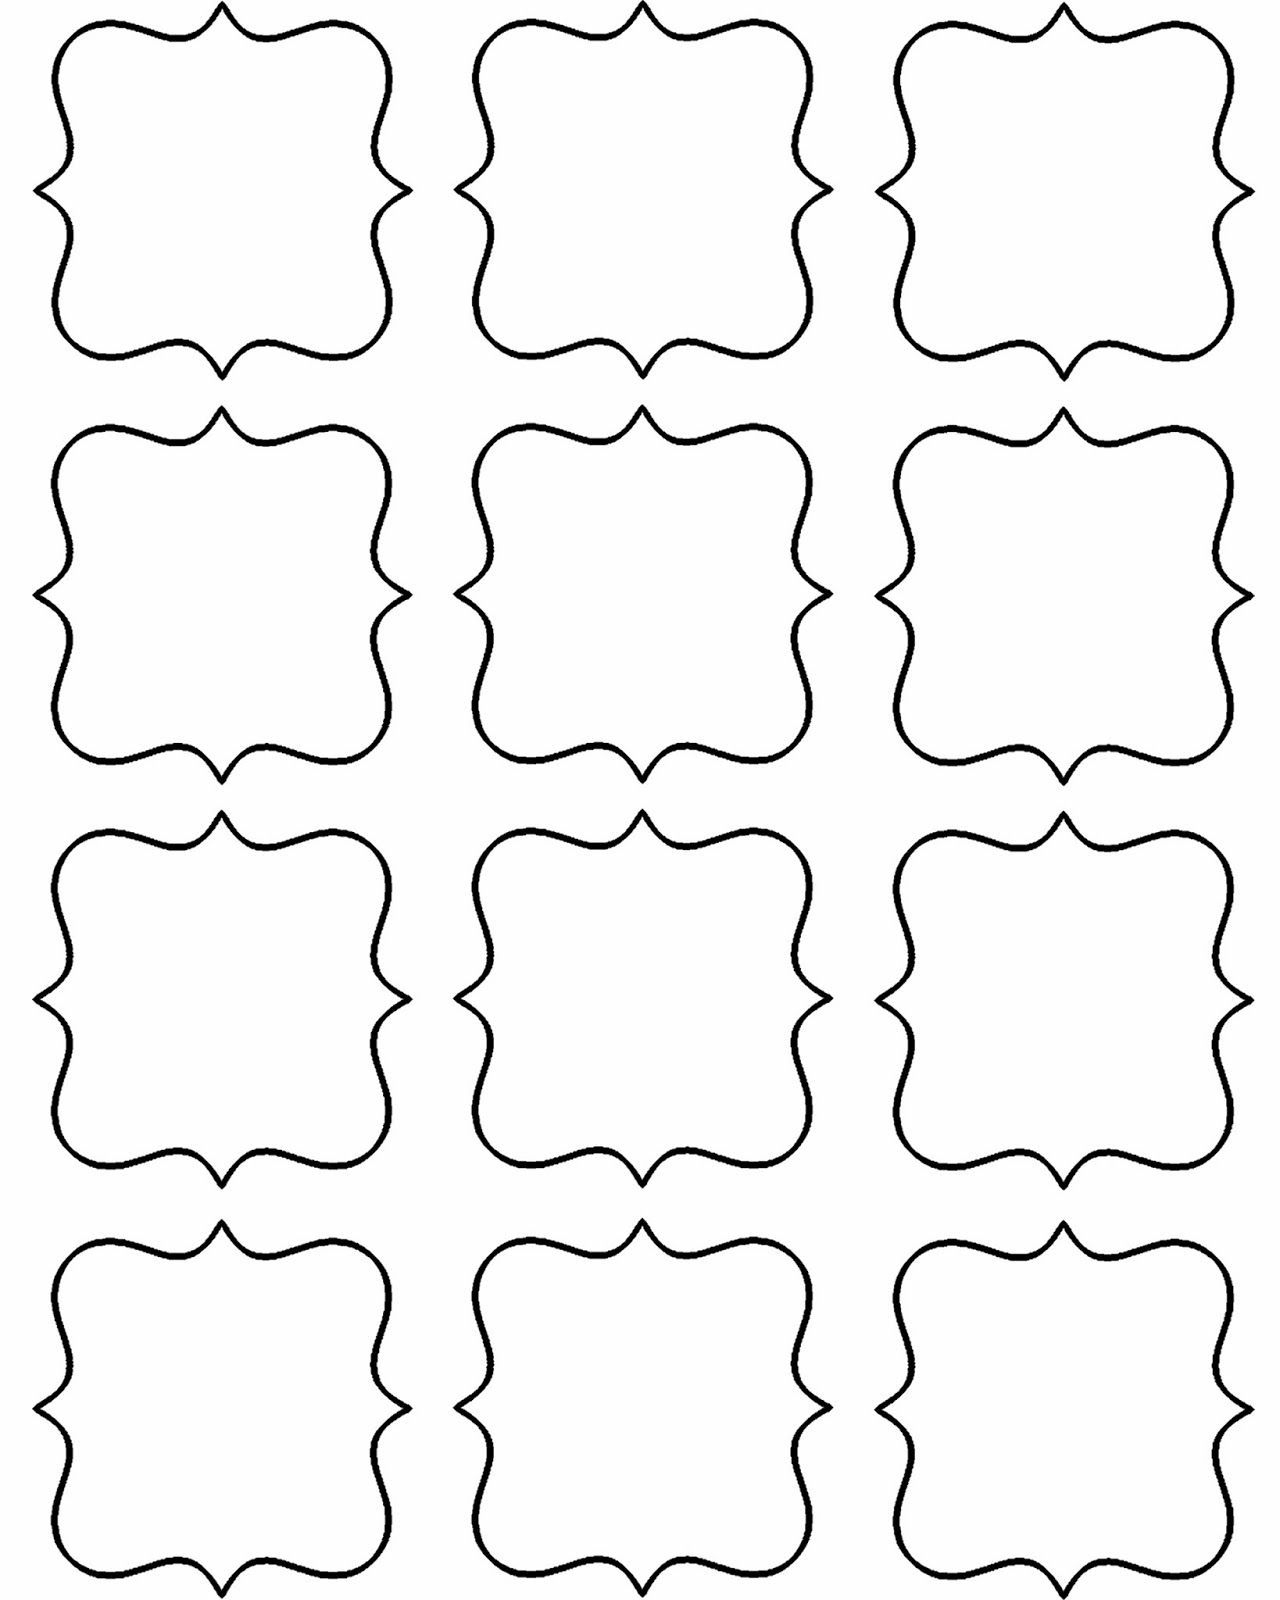 Free Printable Gift Tag Templates For Word – Prntbl - Free Online Gift Tags Printable